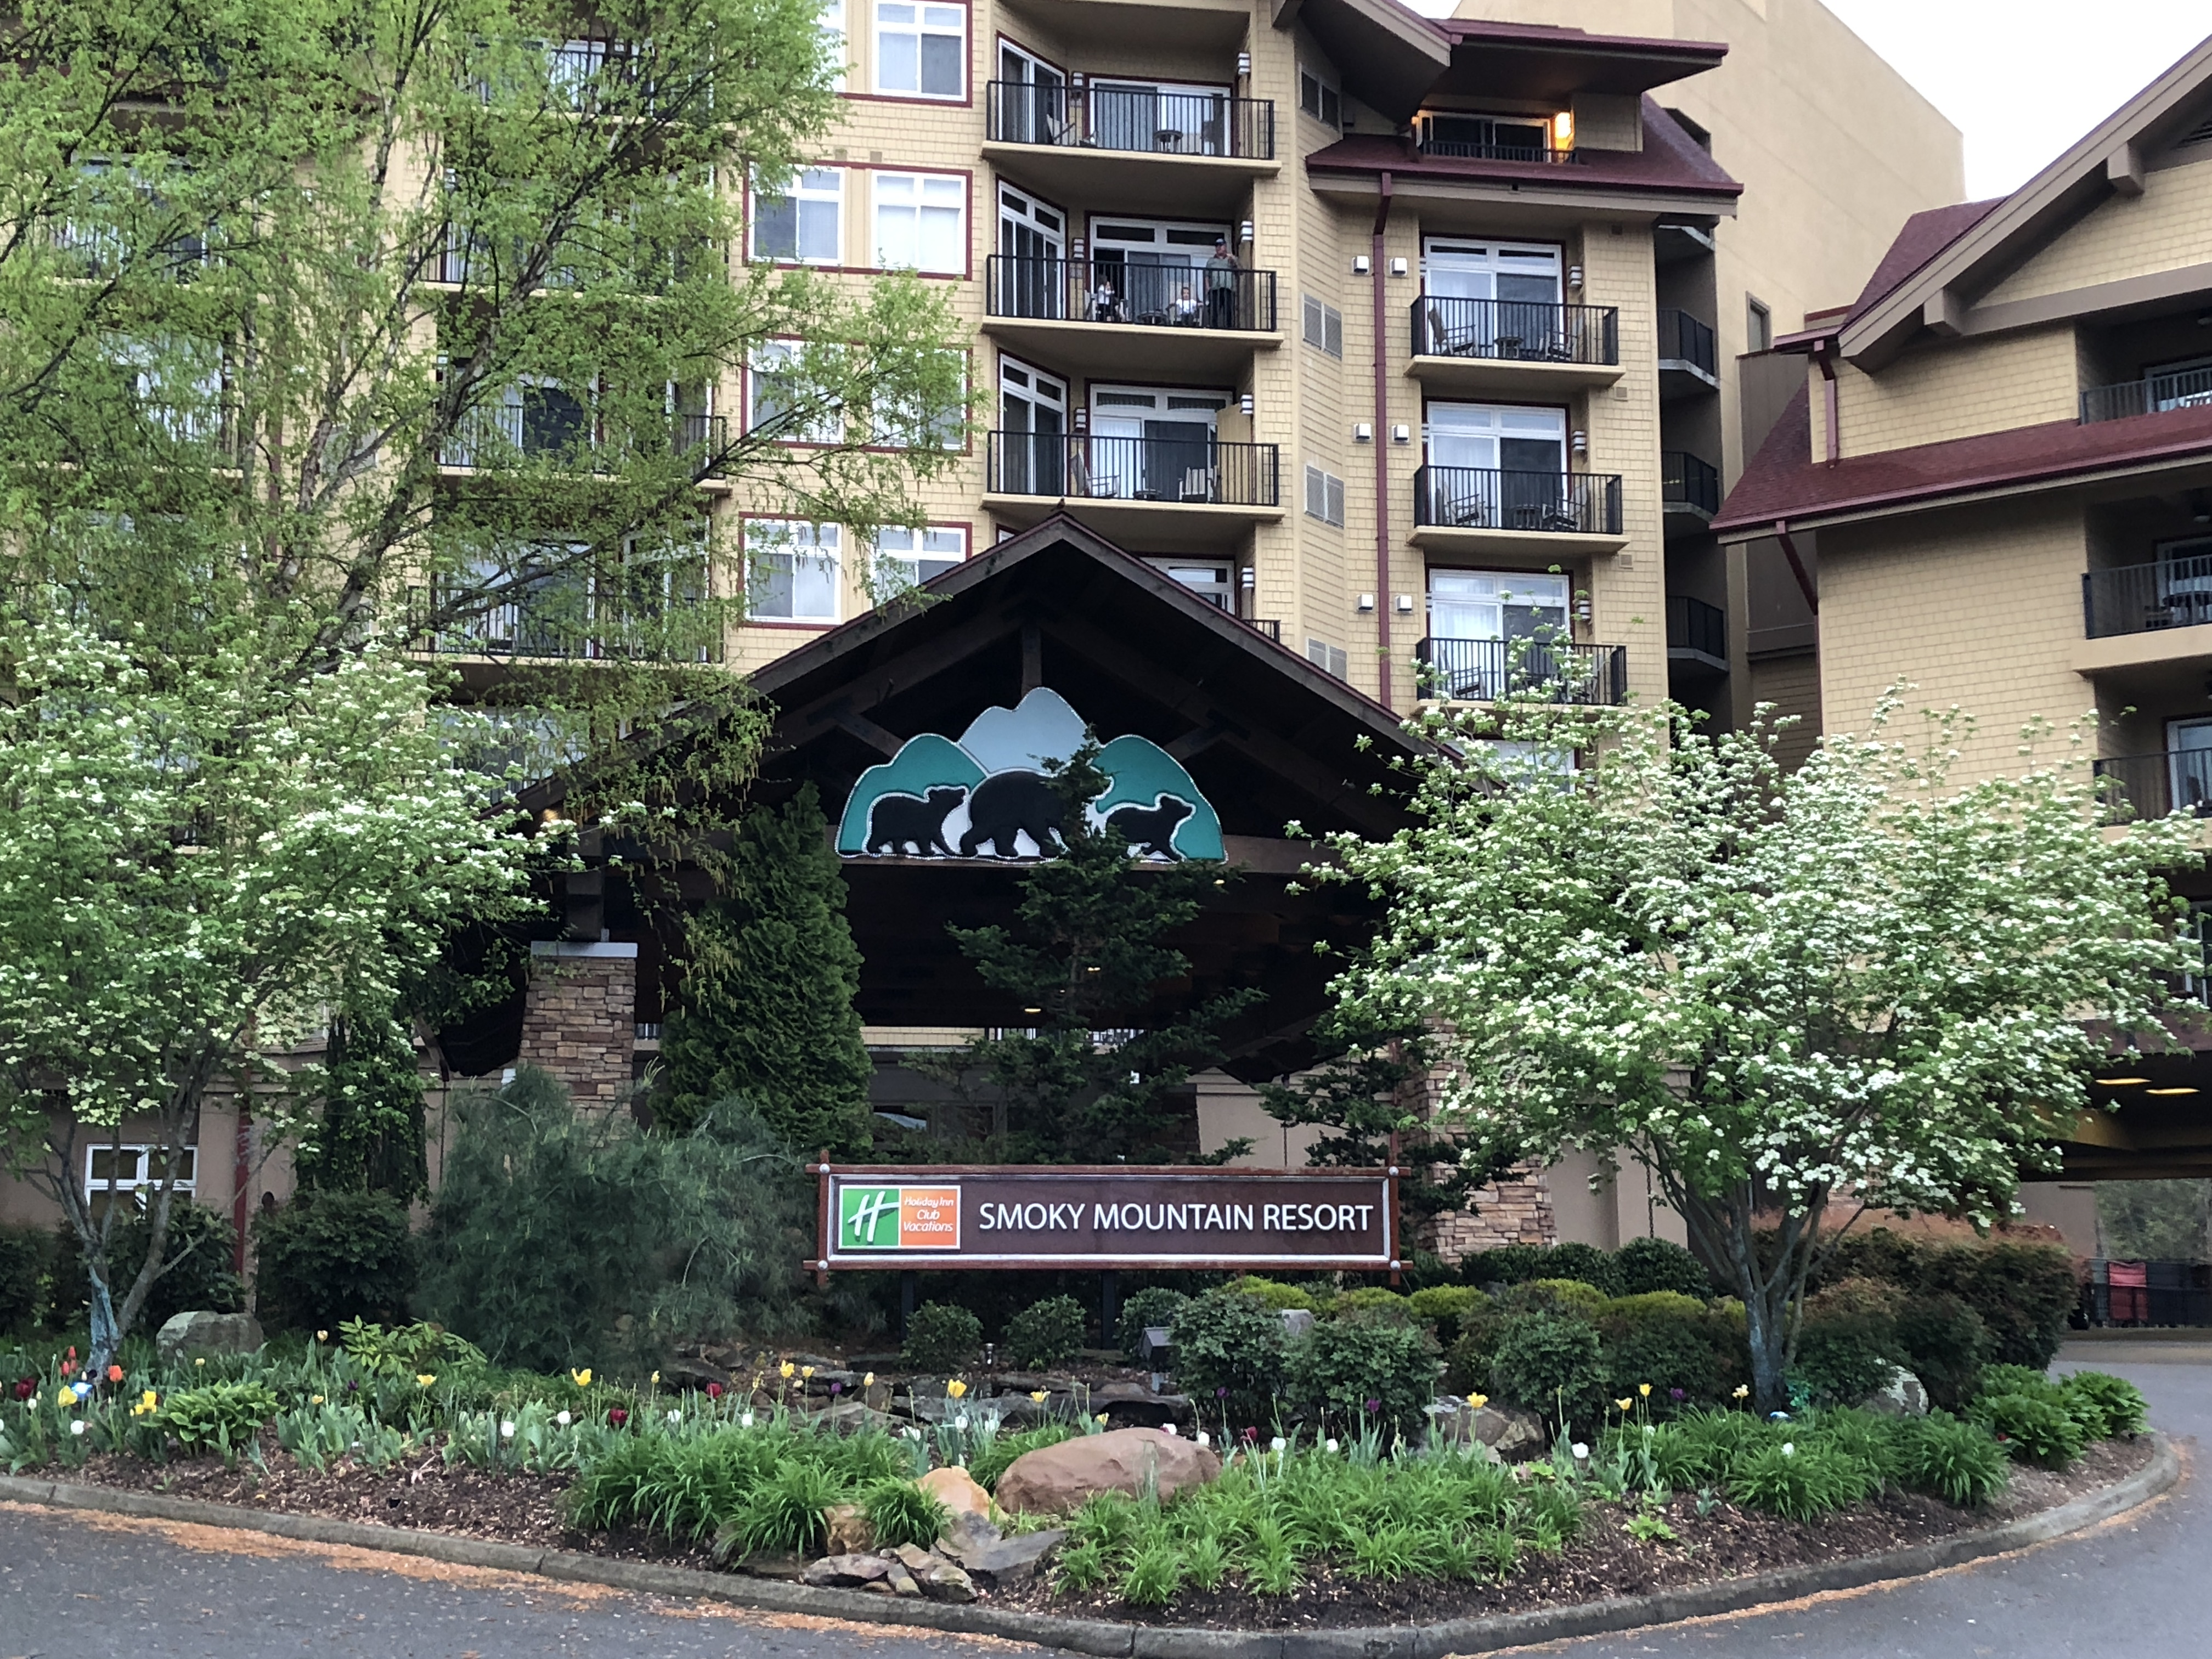 Gatlinburg TN - Visit Tennessee - Holiday Inn Smoky Mountain Resort - Gatlinburg Hotels - Fun Things to Do in Gatlinburg, TN With Kids - Gatlinburg attractions and family friendly places via Misty Nelson travel blogger, family travel blog @frostedevents - Holiday Inn Vacation Club Resorts